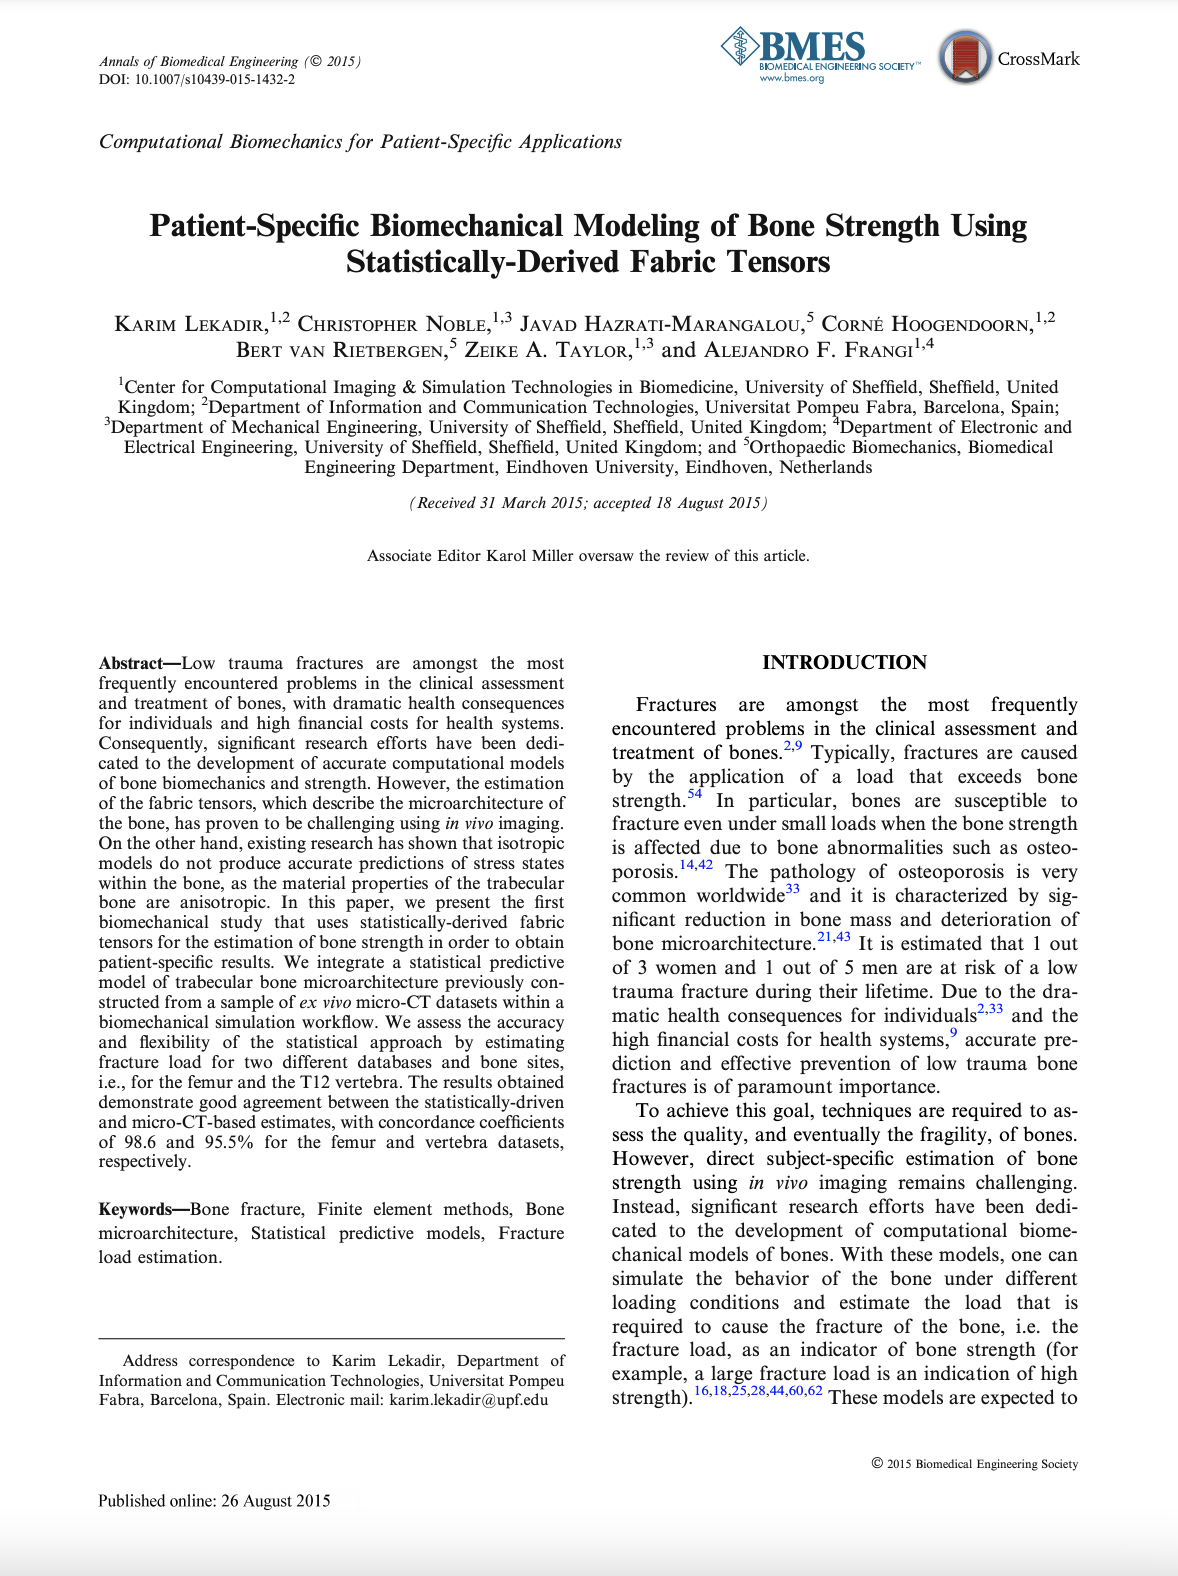 Patient-Specific Biomechanical Modeling of Bone Strength Using Statistically-Derived Fabric Tensors